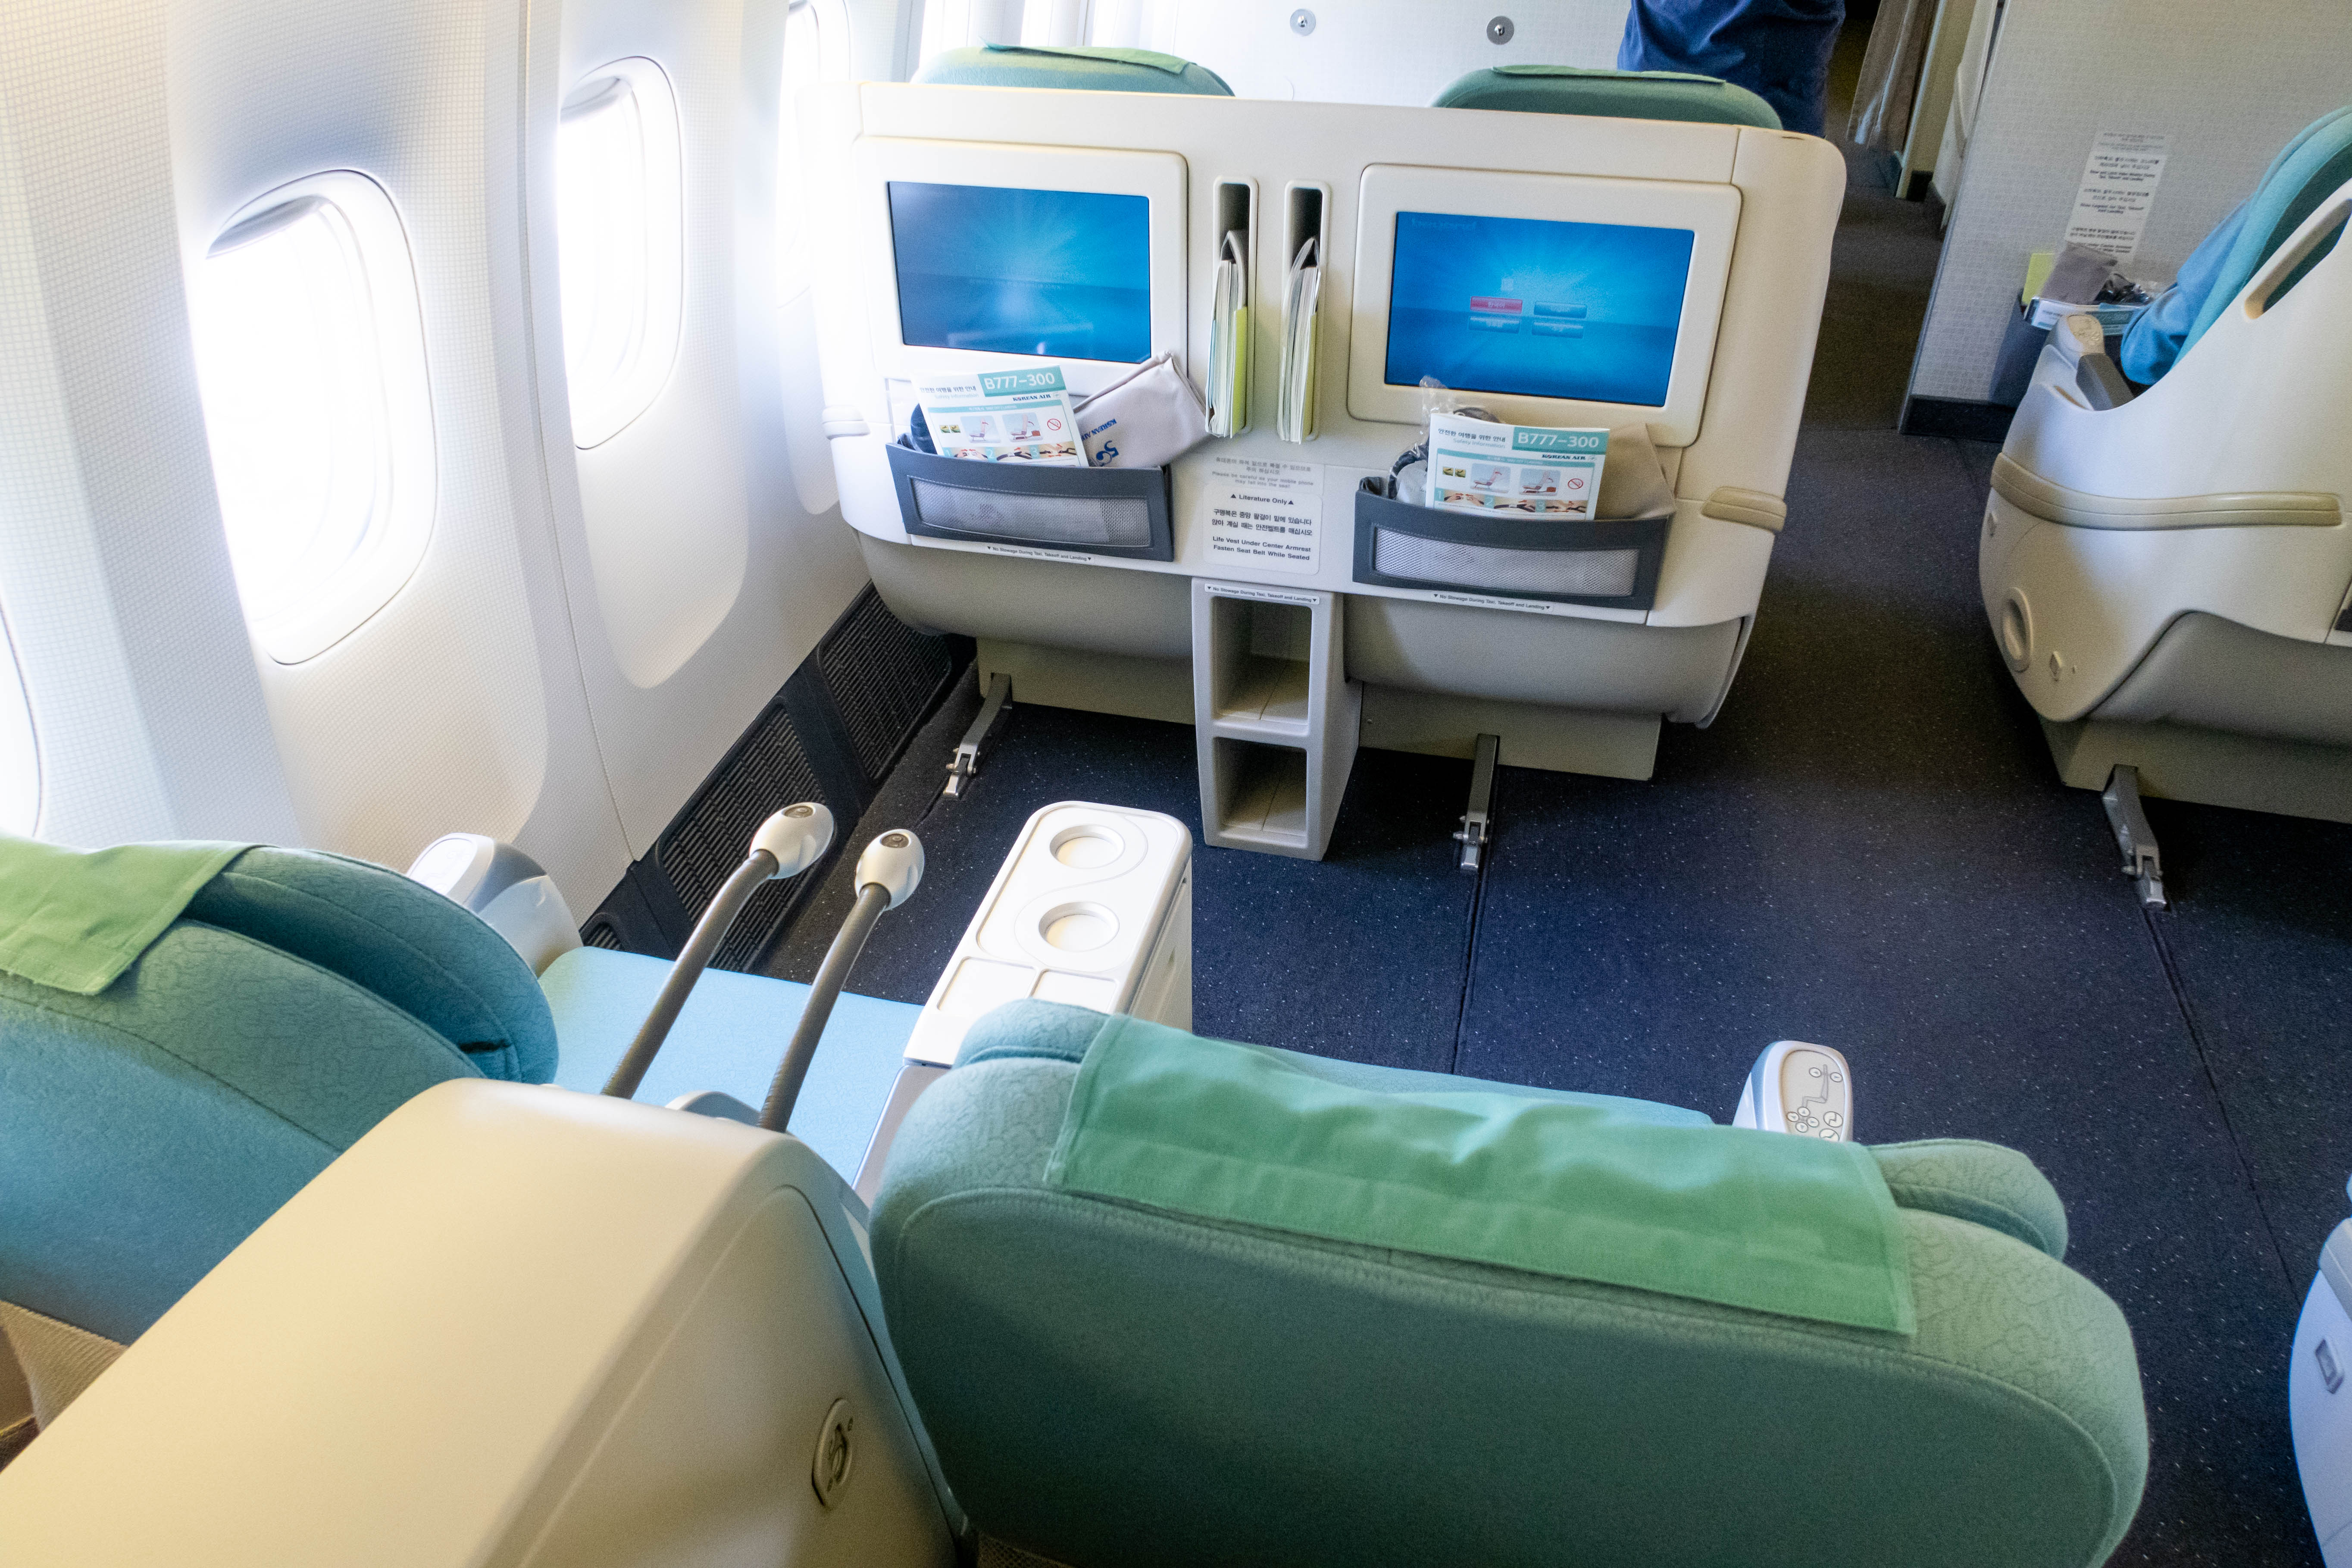 Review: Korean Air 777-300 Business Class from Seoul Incheon to Tokyo Narita